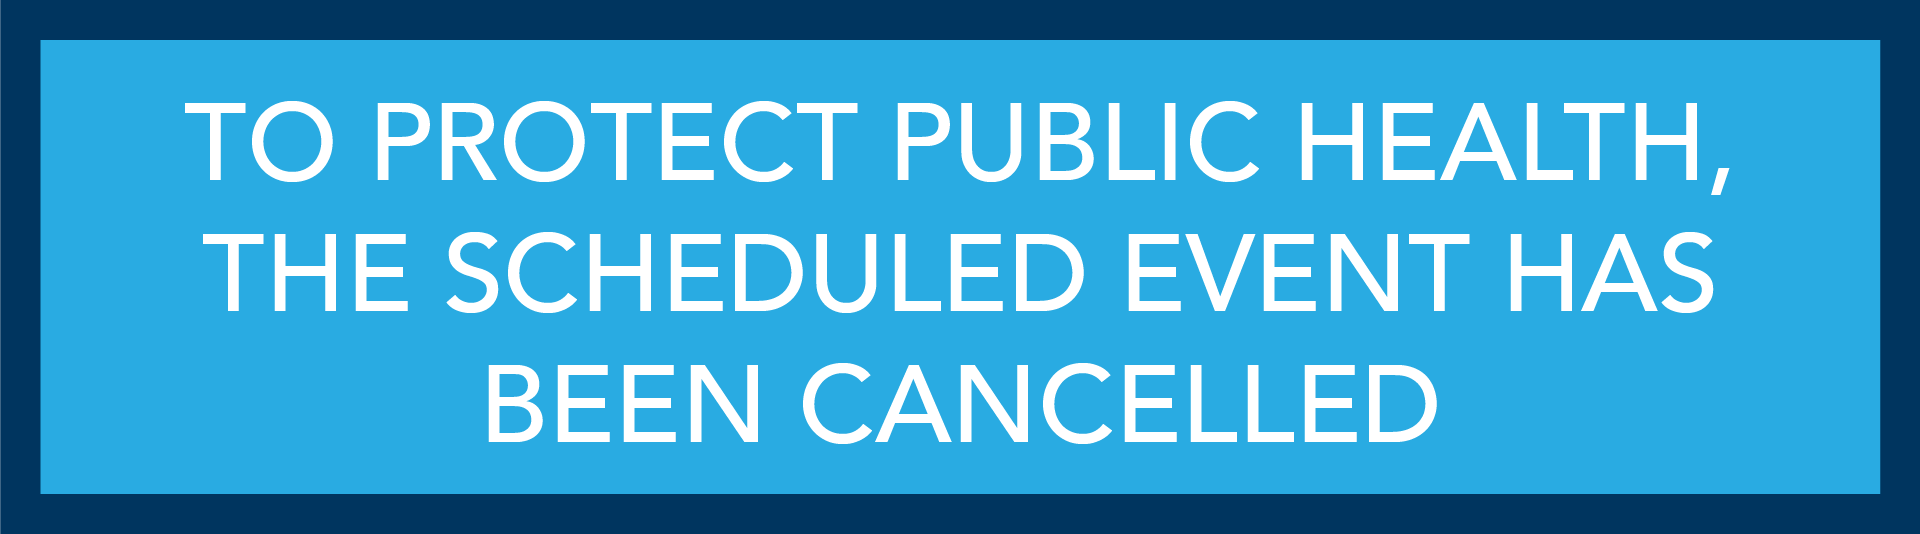 Workshops and Contests Have Been Cancelled